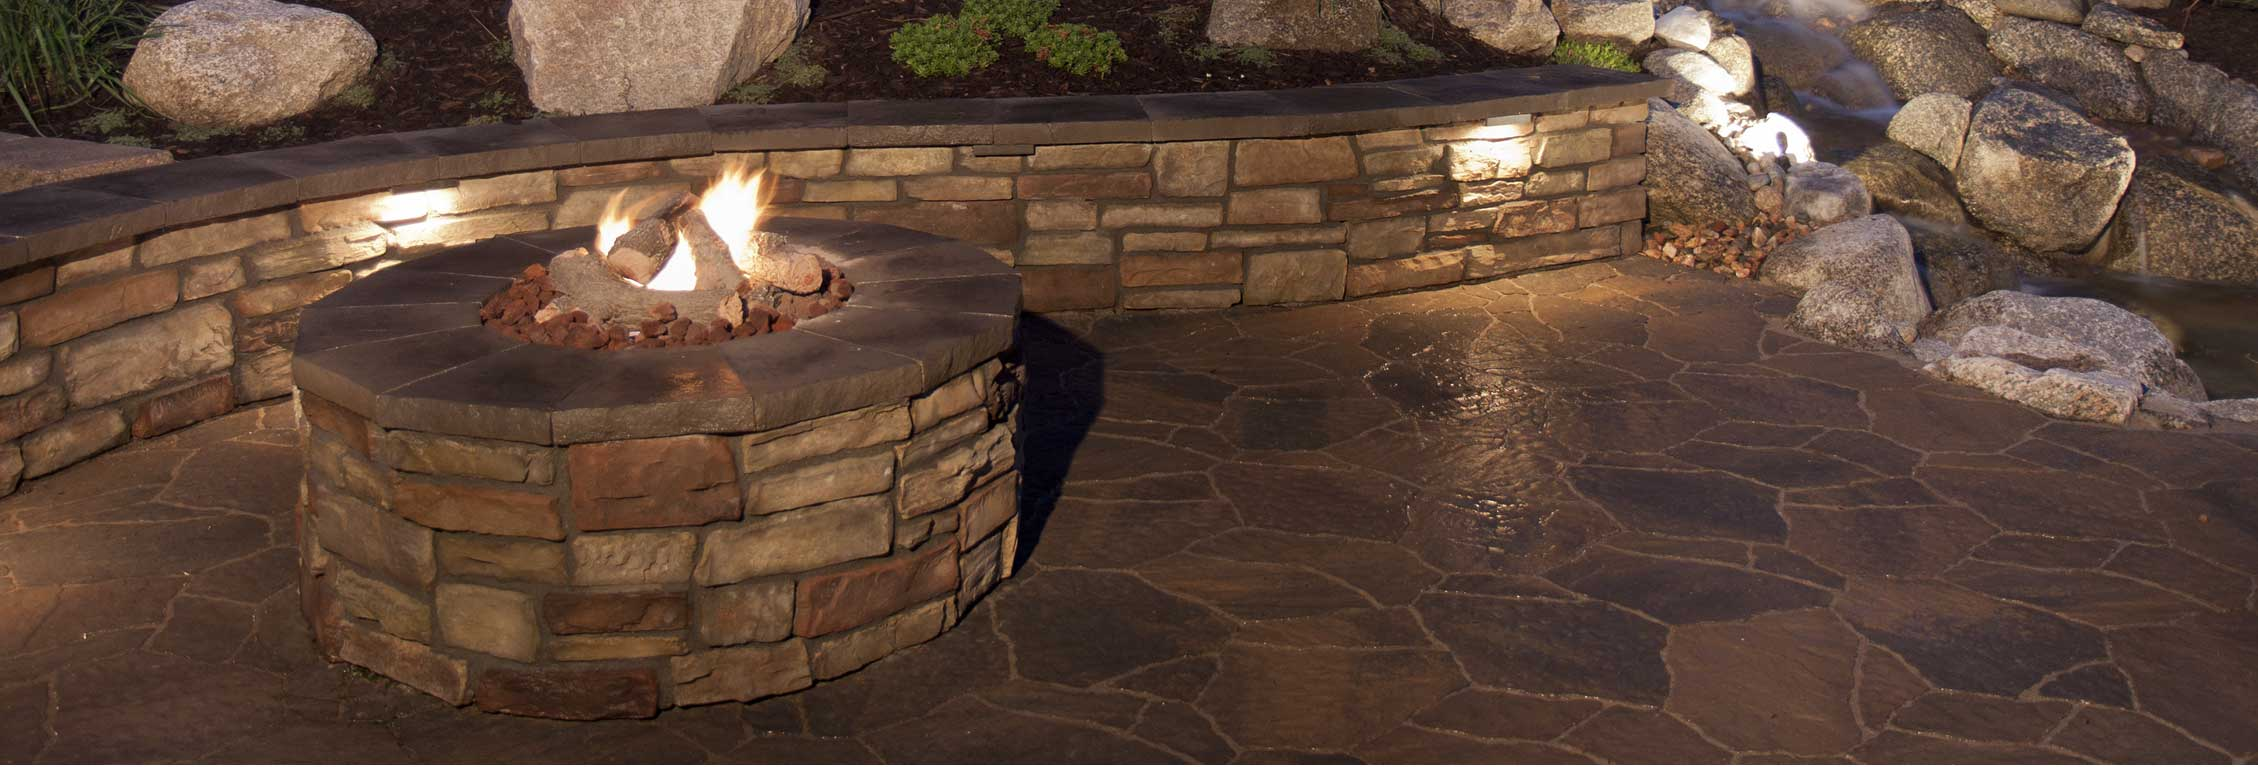 How To Installing A Fire Pit: How To Install A Fire Pit